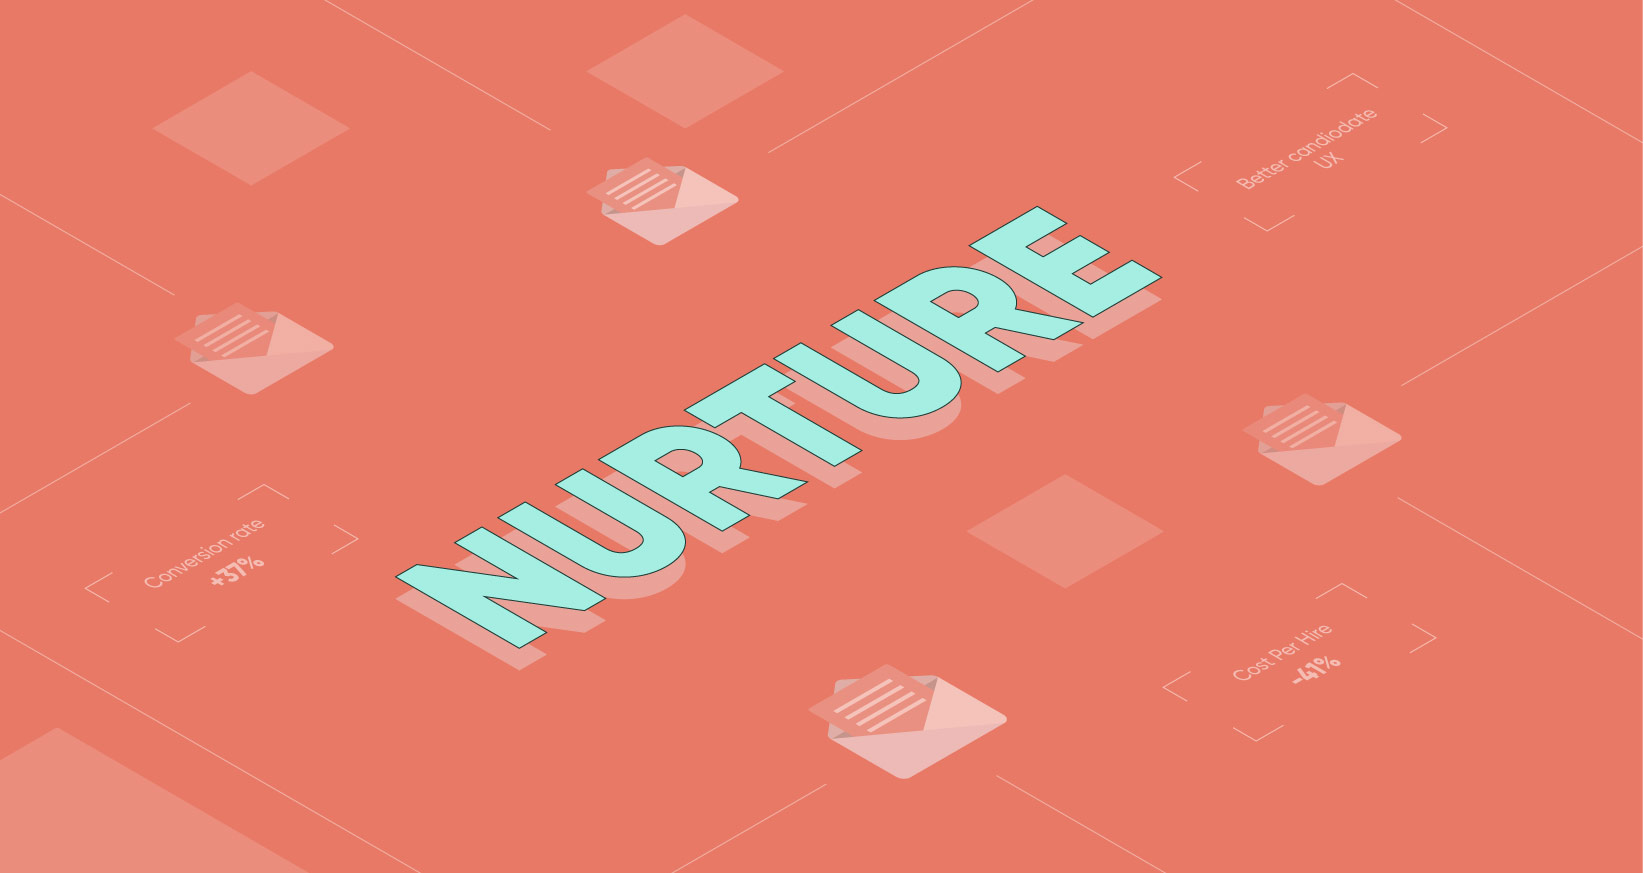 Nurture-visual